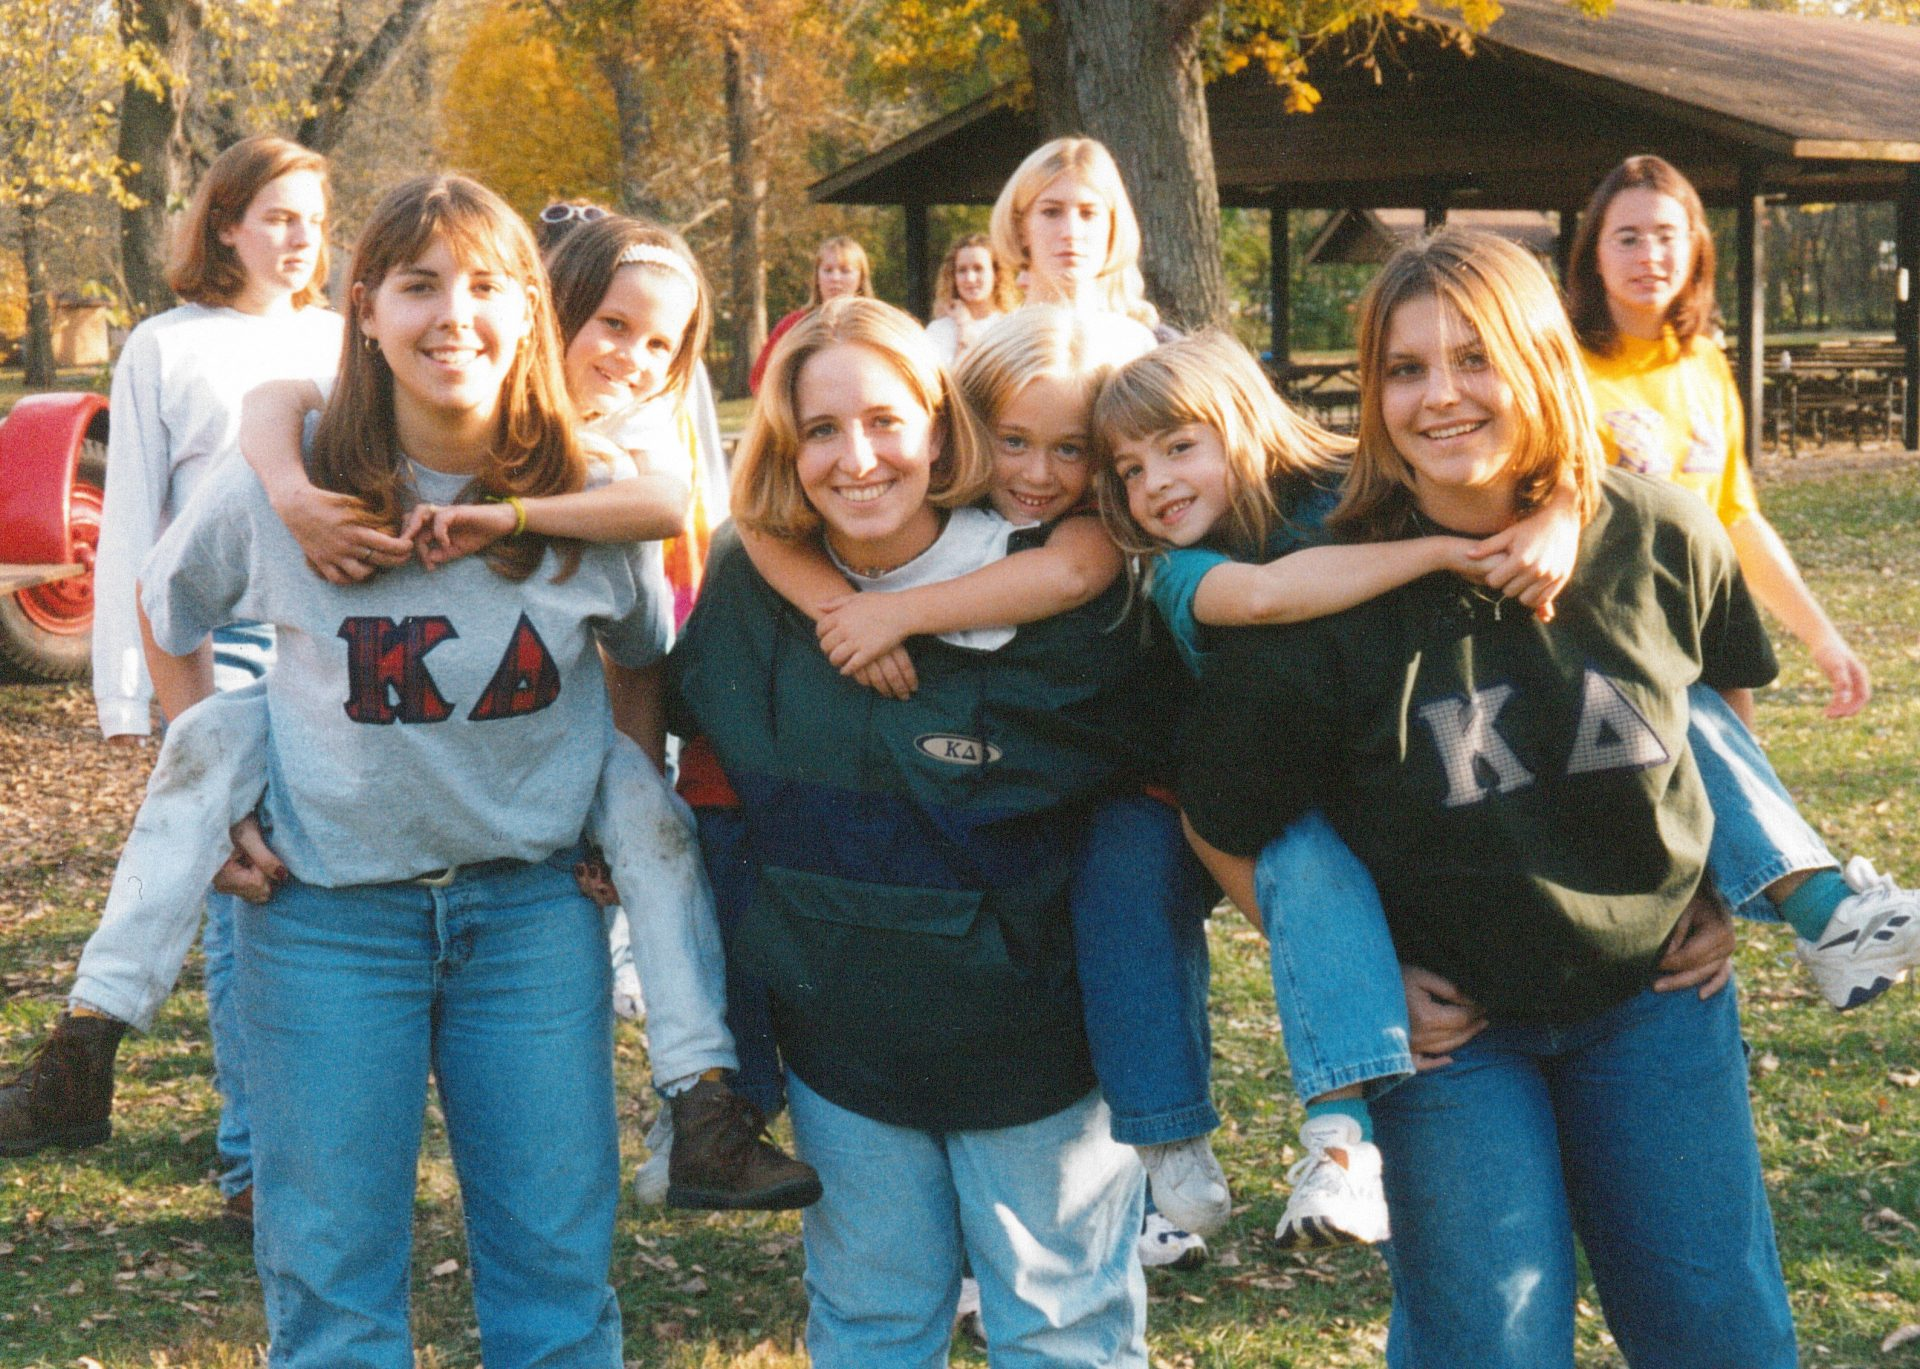 Kappa Delta Girl Scouts 1990s